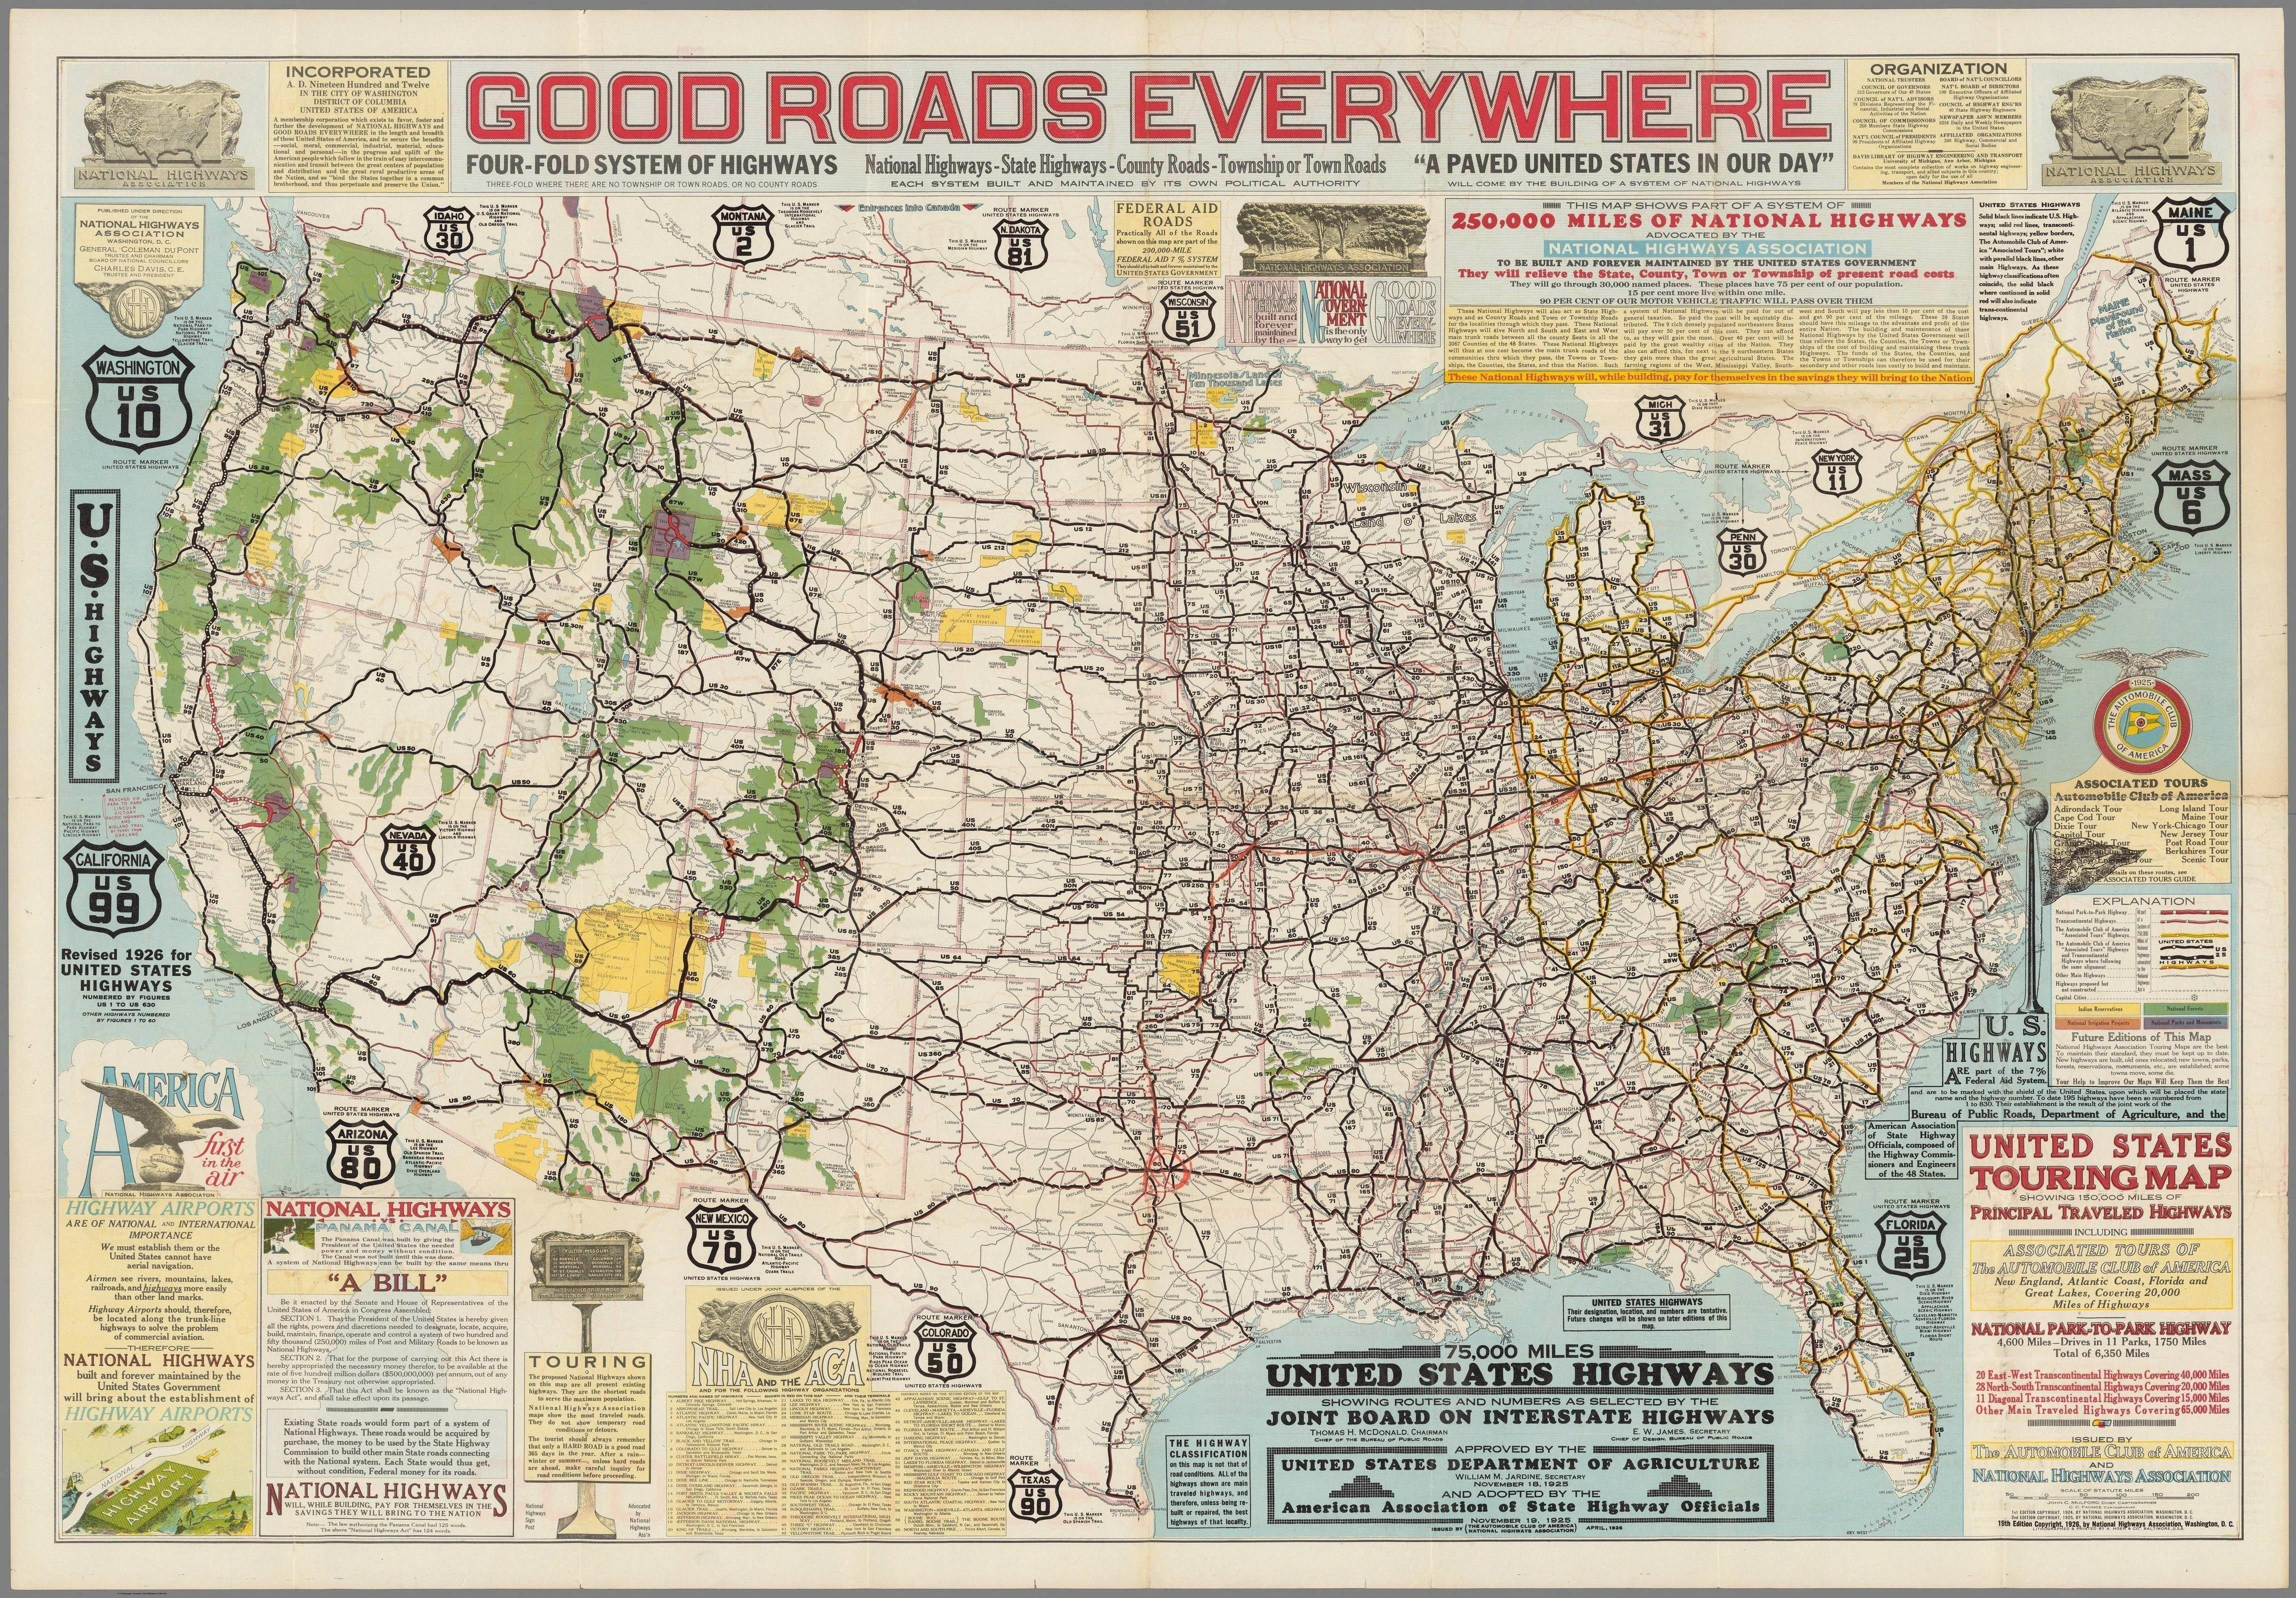 Images United States Maps Highways on us route 101, national highway system, pan-american highway, united states features map, united states atlas, u.s. route 35, u.s. route 36, united states and canada physical map, us interstate highway system, united states route map, california state route 1, united states gold rush map, united states map with bodies of water, u.s. route 80, international e-road network, united states map zoom in, united states mileage map, u.s. route 33, large blank united states map, united states map large wall, www.united states map, united states maps usa, 50 states and capitals map, united states map black background, united states map cartoon, united states map with cities, us interstate 5, driving distances united states map, united states map interstate 10, united states canals, diversity united states map,